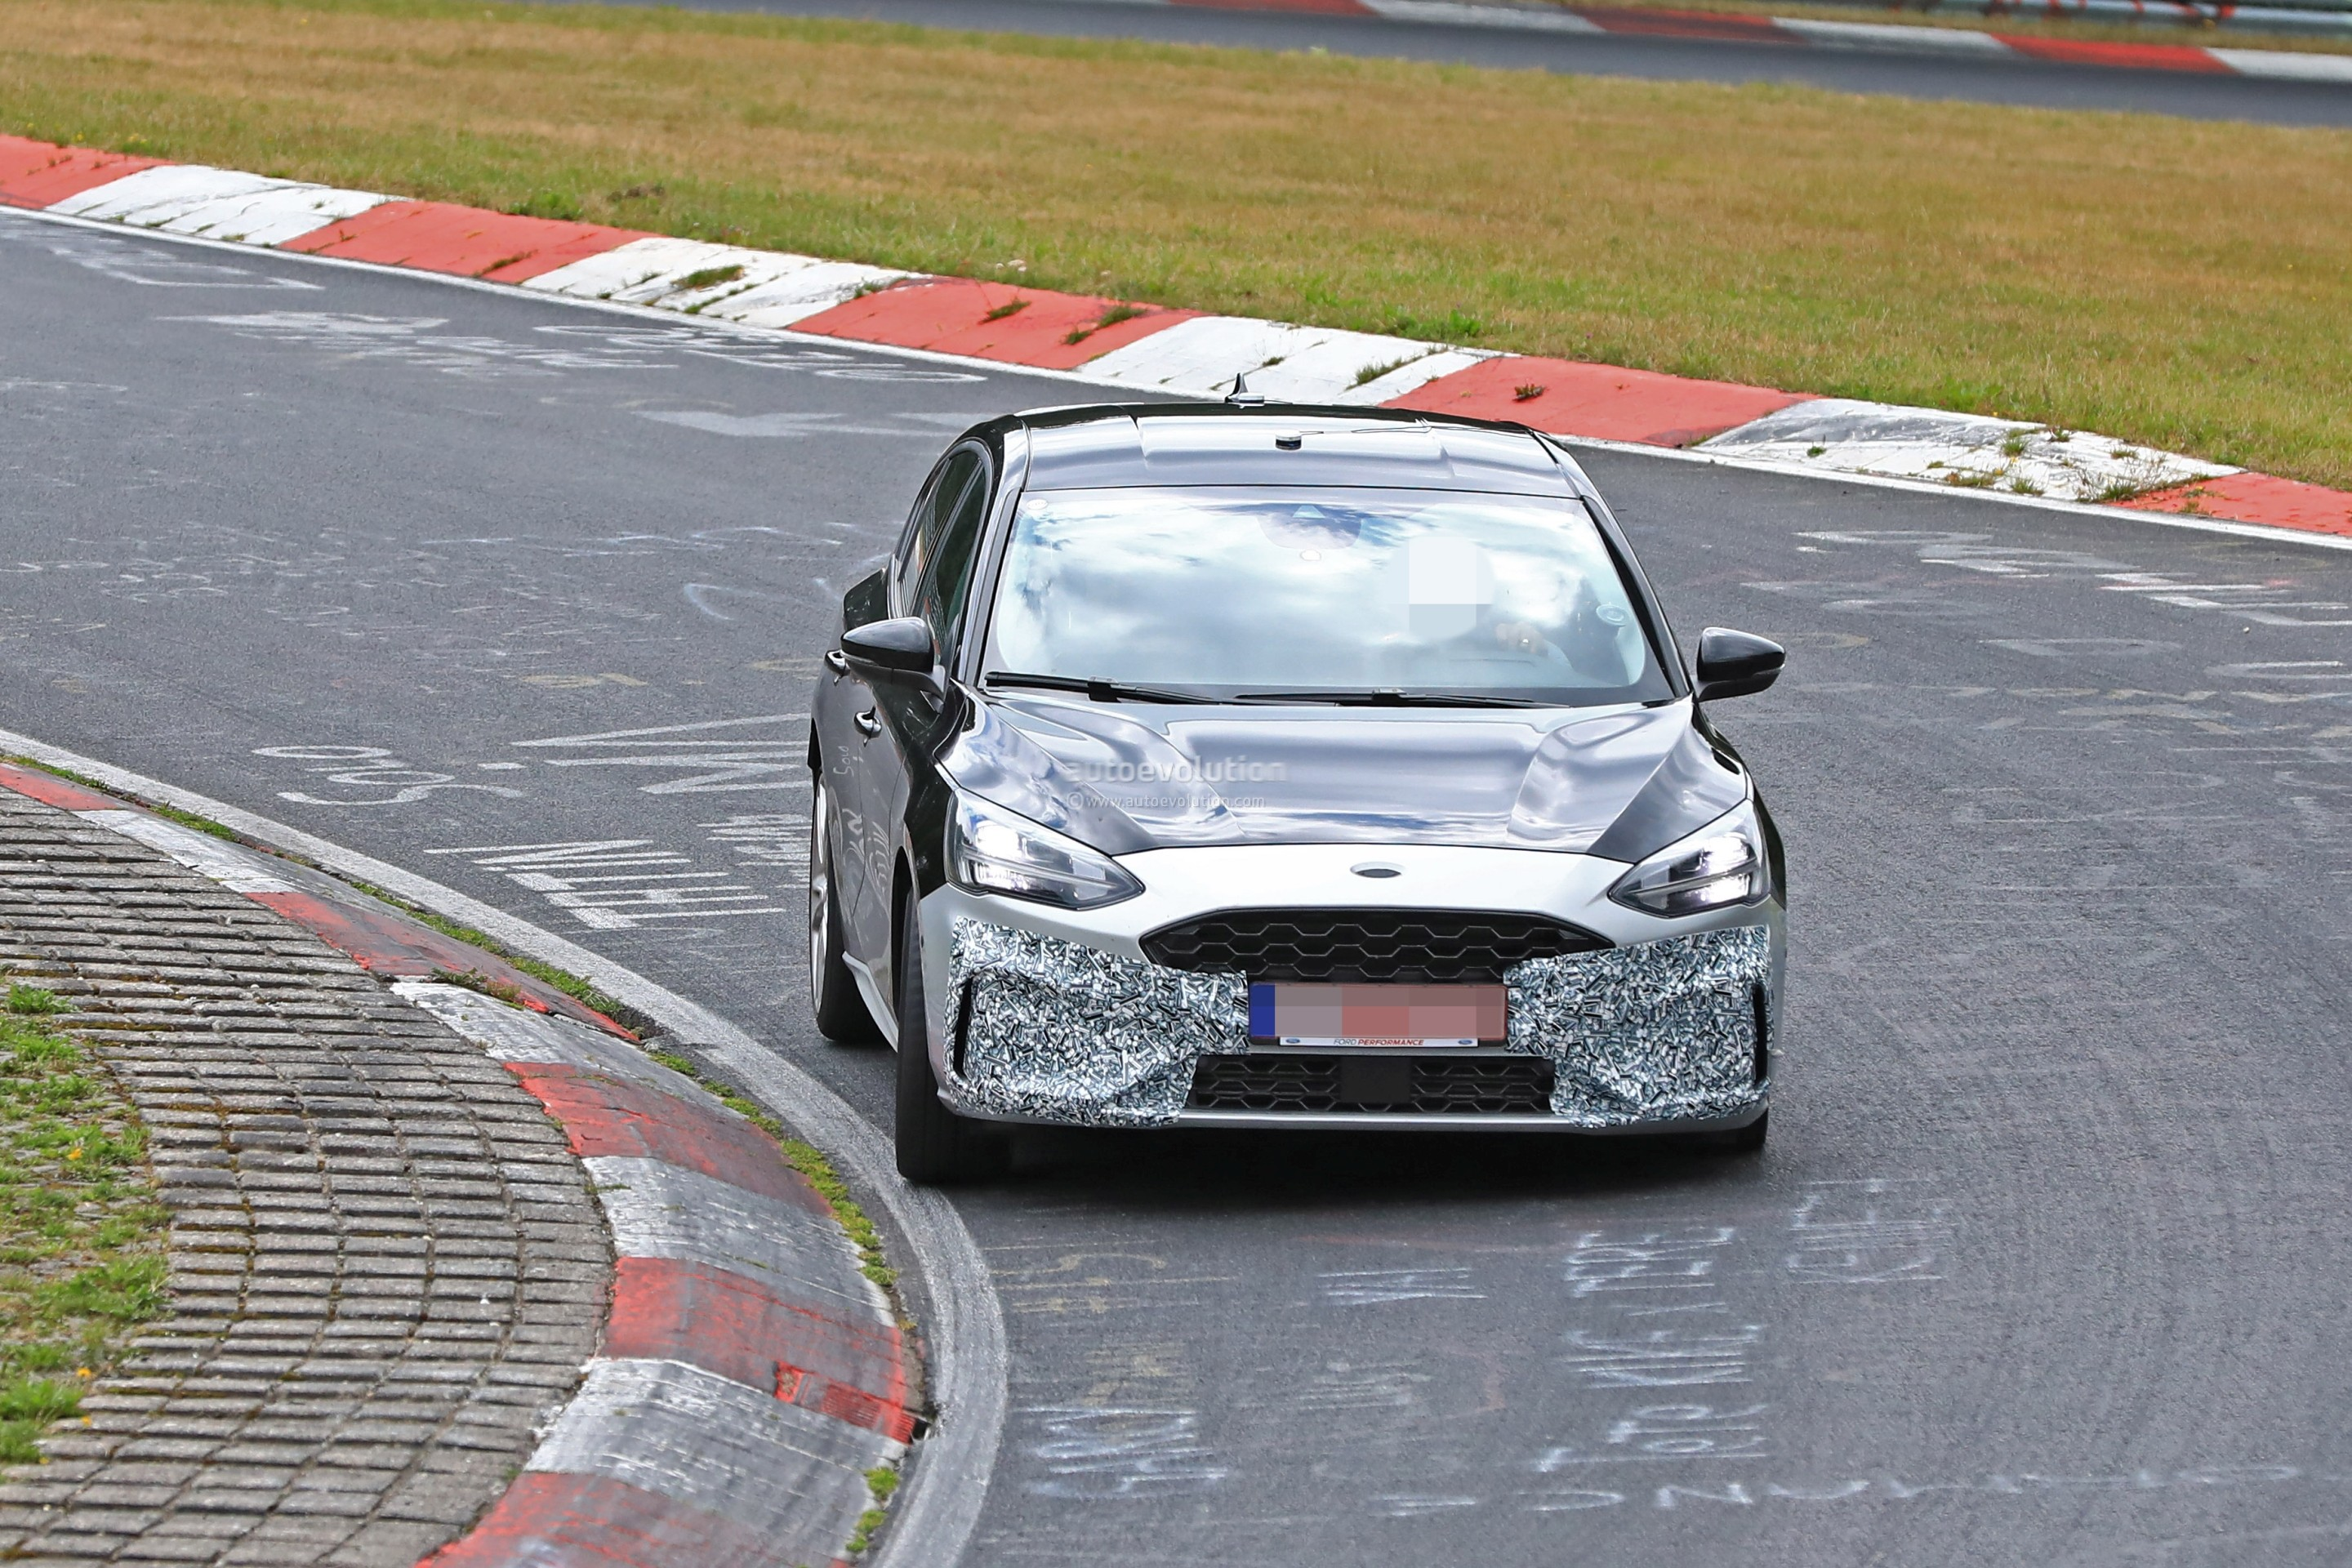 2018 - [Ford] Focus IV - Page 13 New-ford-focus-st-hits-nurburgring-will-offer-20l-turbo-and-automatic_1